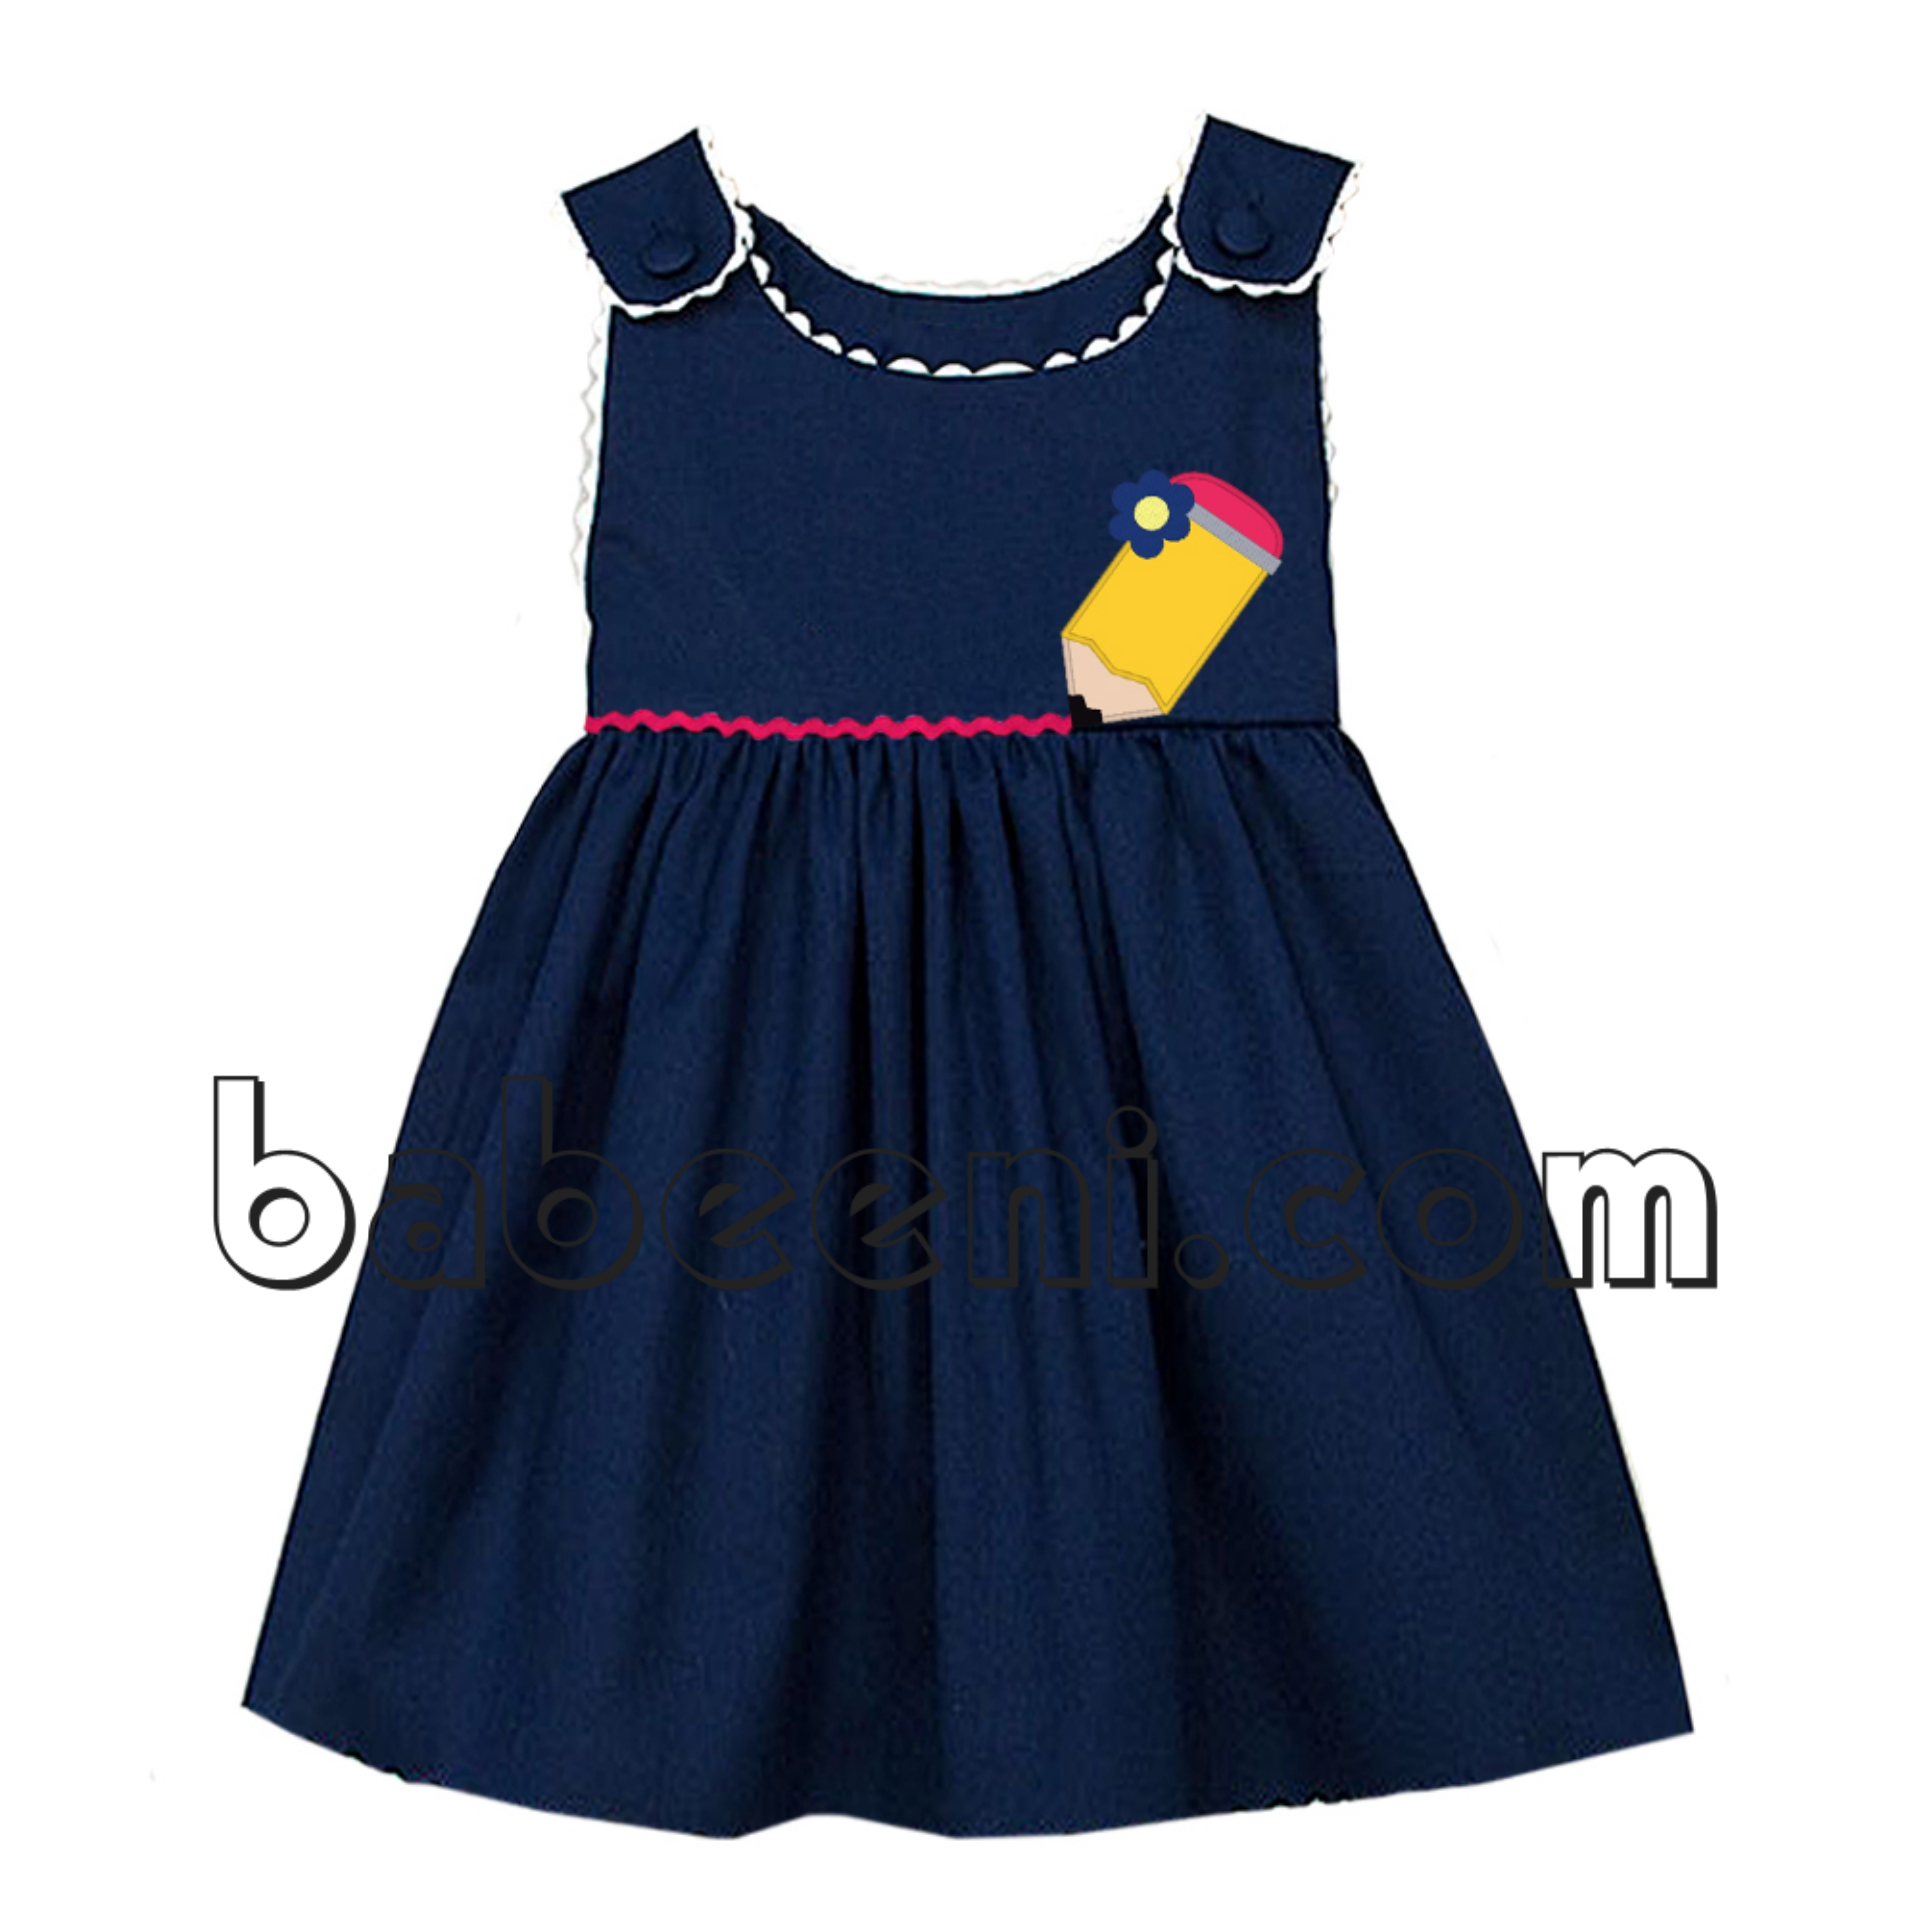 Lovely pencil applique dress - DR 2498